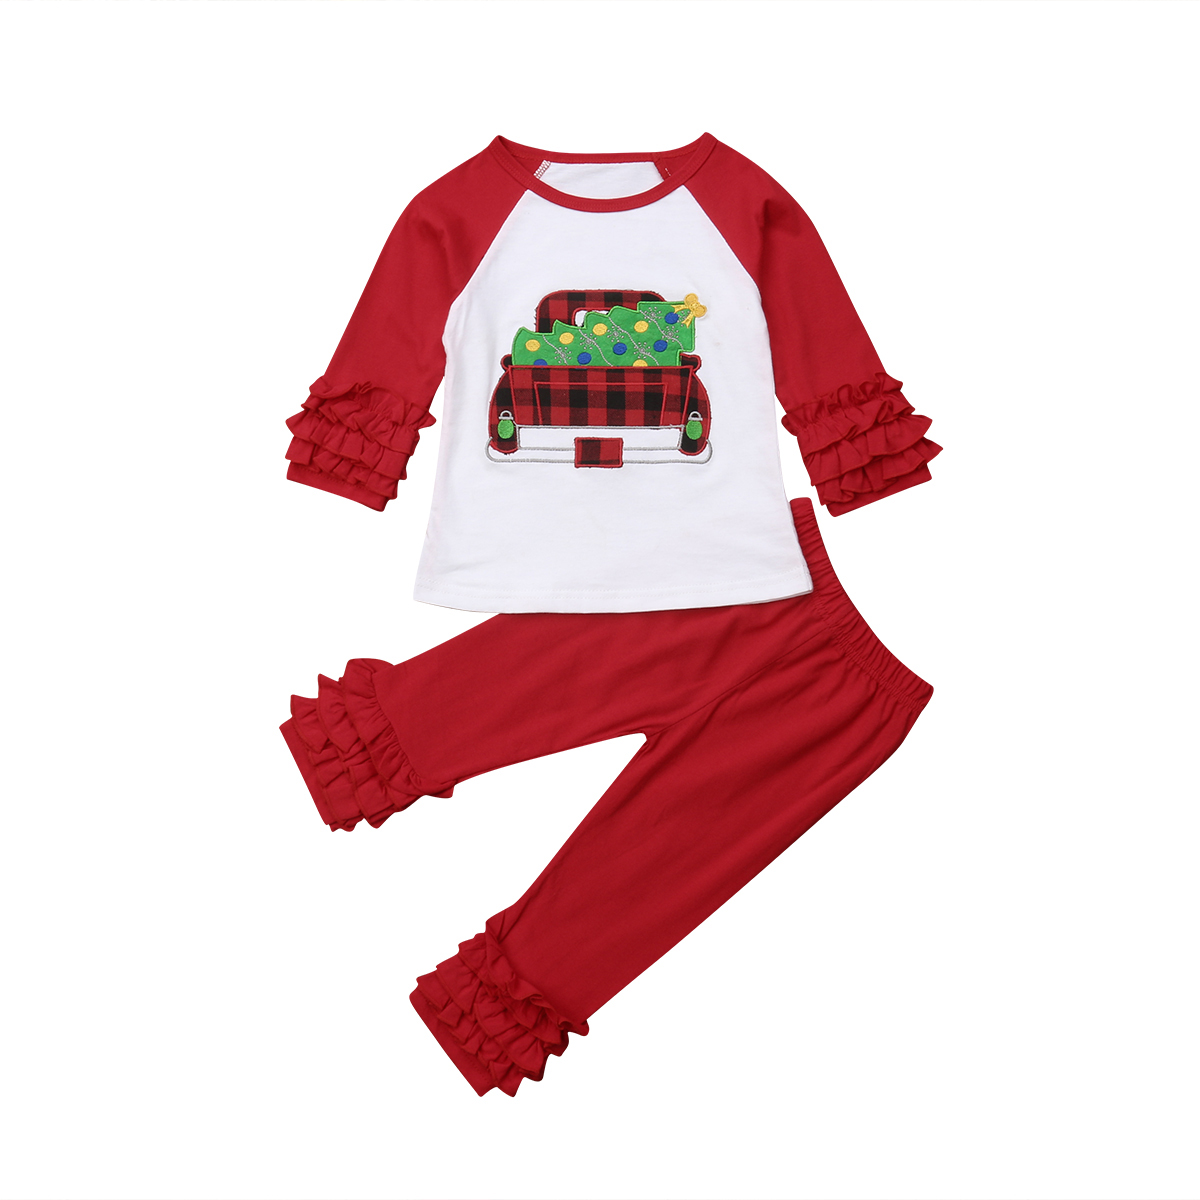 Christmas Kids Baby Girls Clothing Tops Cotton T-shirt Long Sleeve Ruffle Pants Xmax Cotton 2PCS Outfit Clothes Set Girl 0-6T fashion baby girl t shirt set cotton heart print shirt hole denim cropped trousers casual polka dot children clothing set